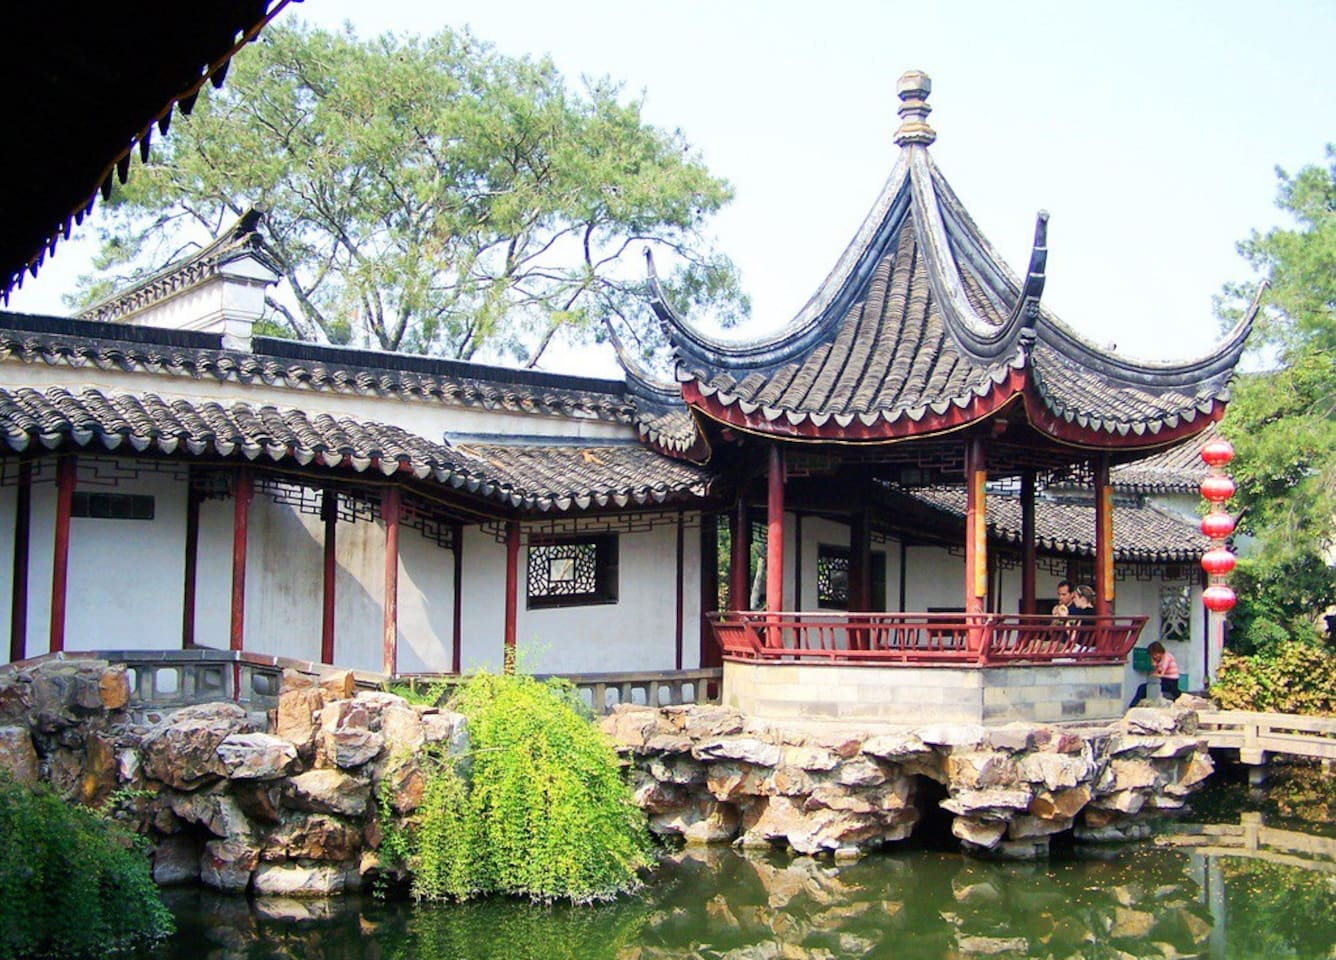 Heart Location of Suzhou Old Town